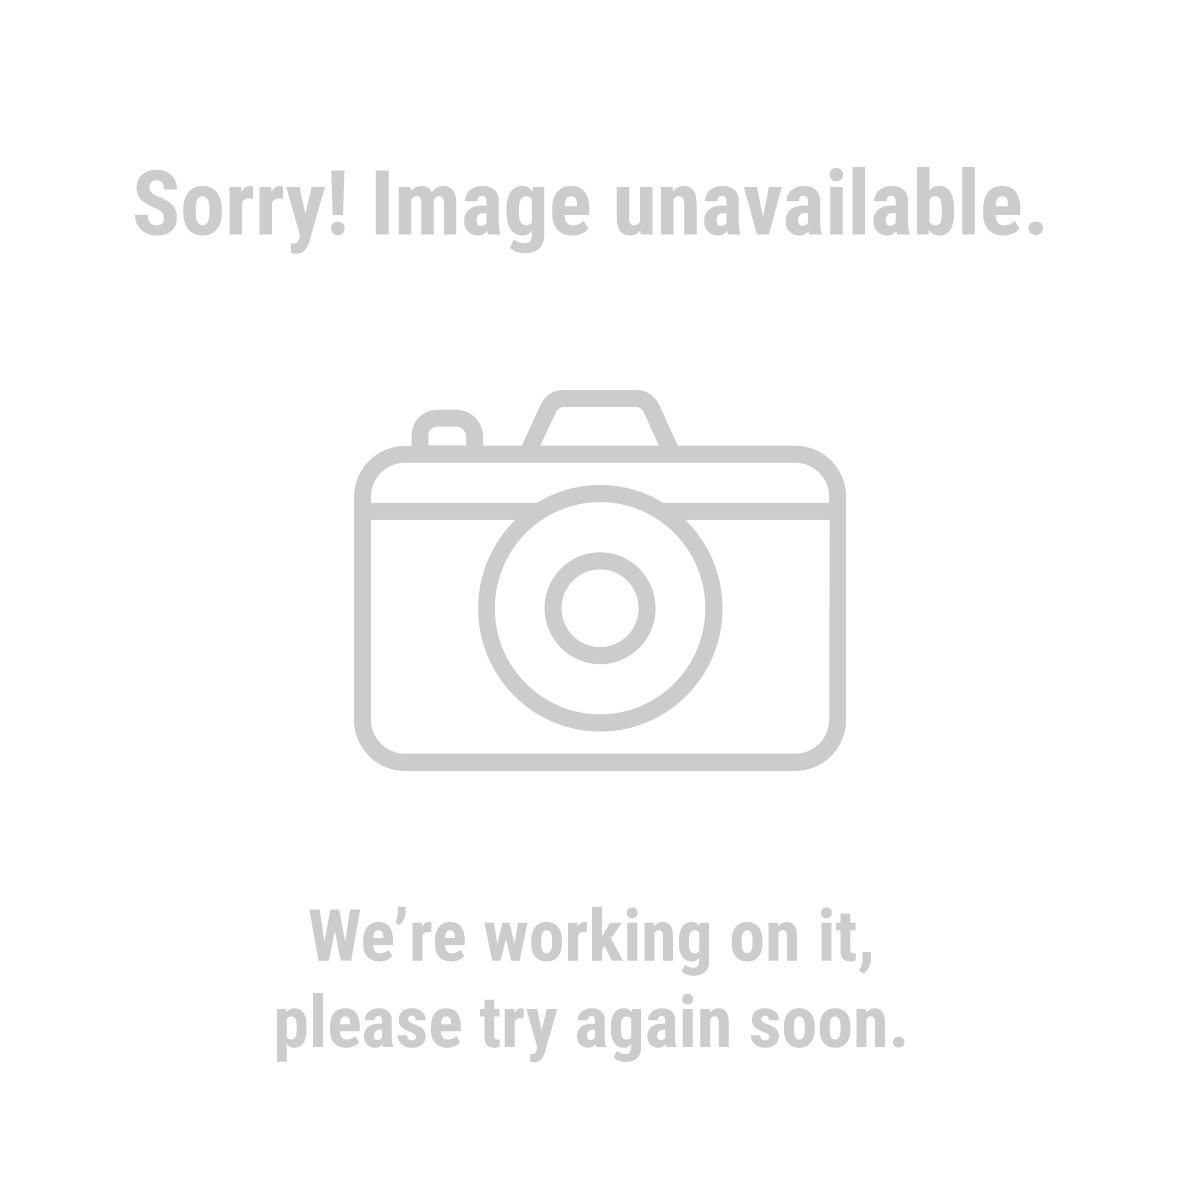 "Central Forge 92307 1"" Double Wheel Rope Pulley, 2 Piece Set"